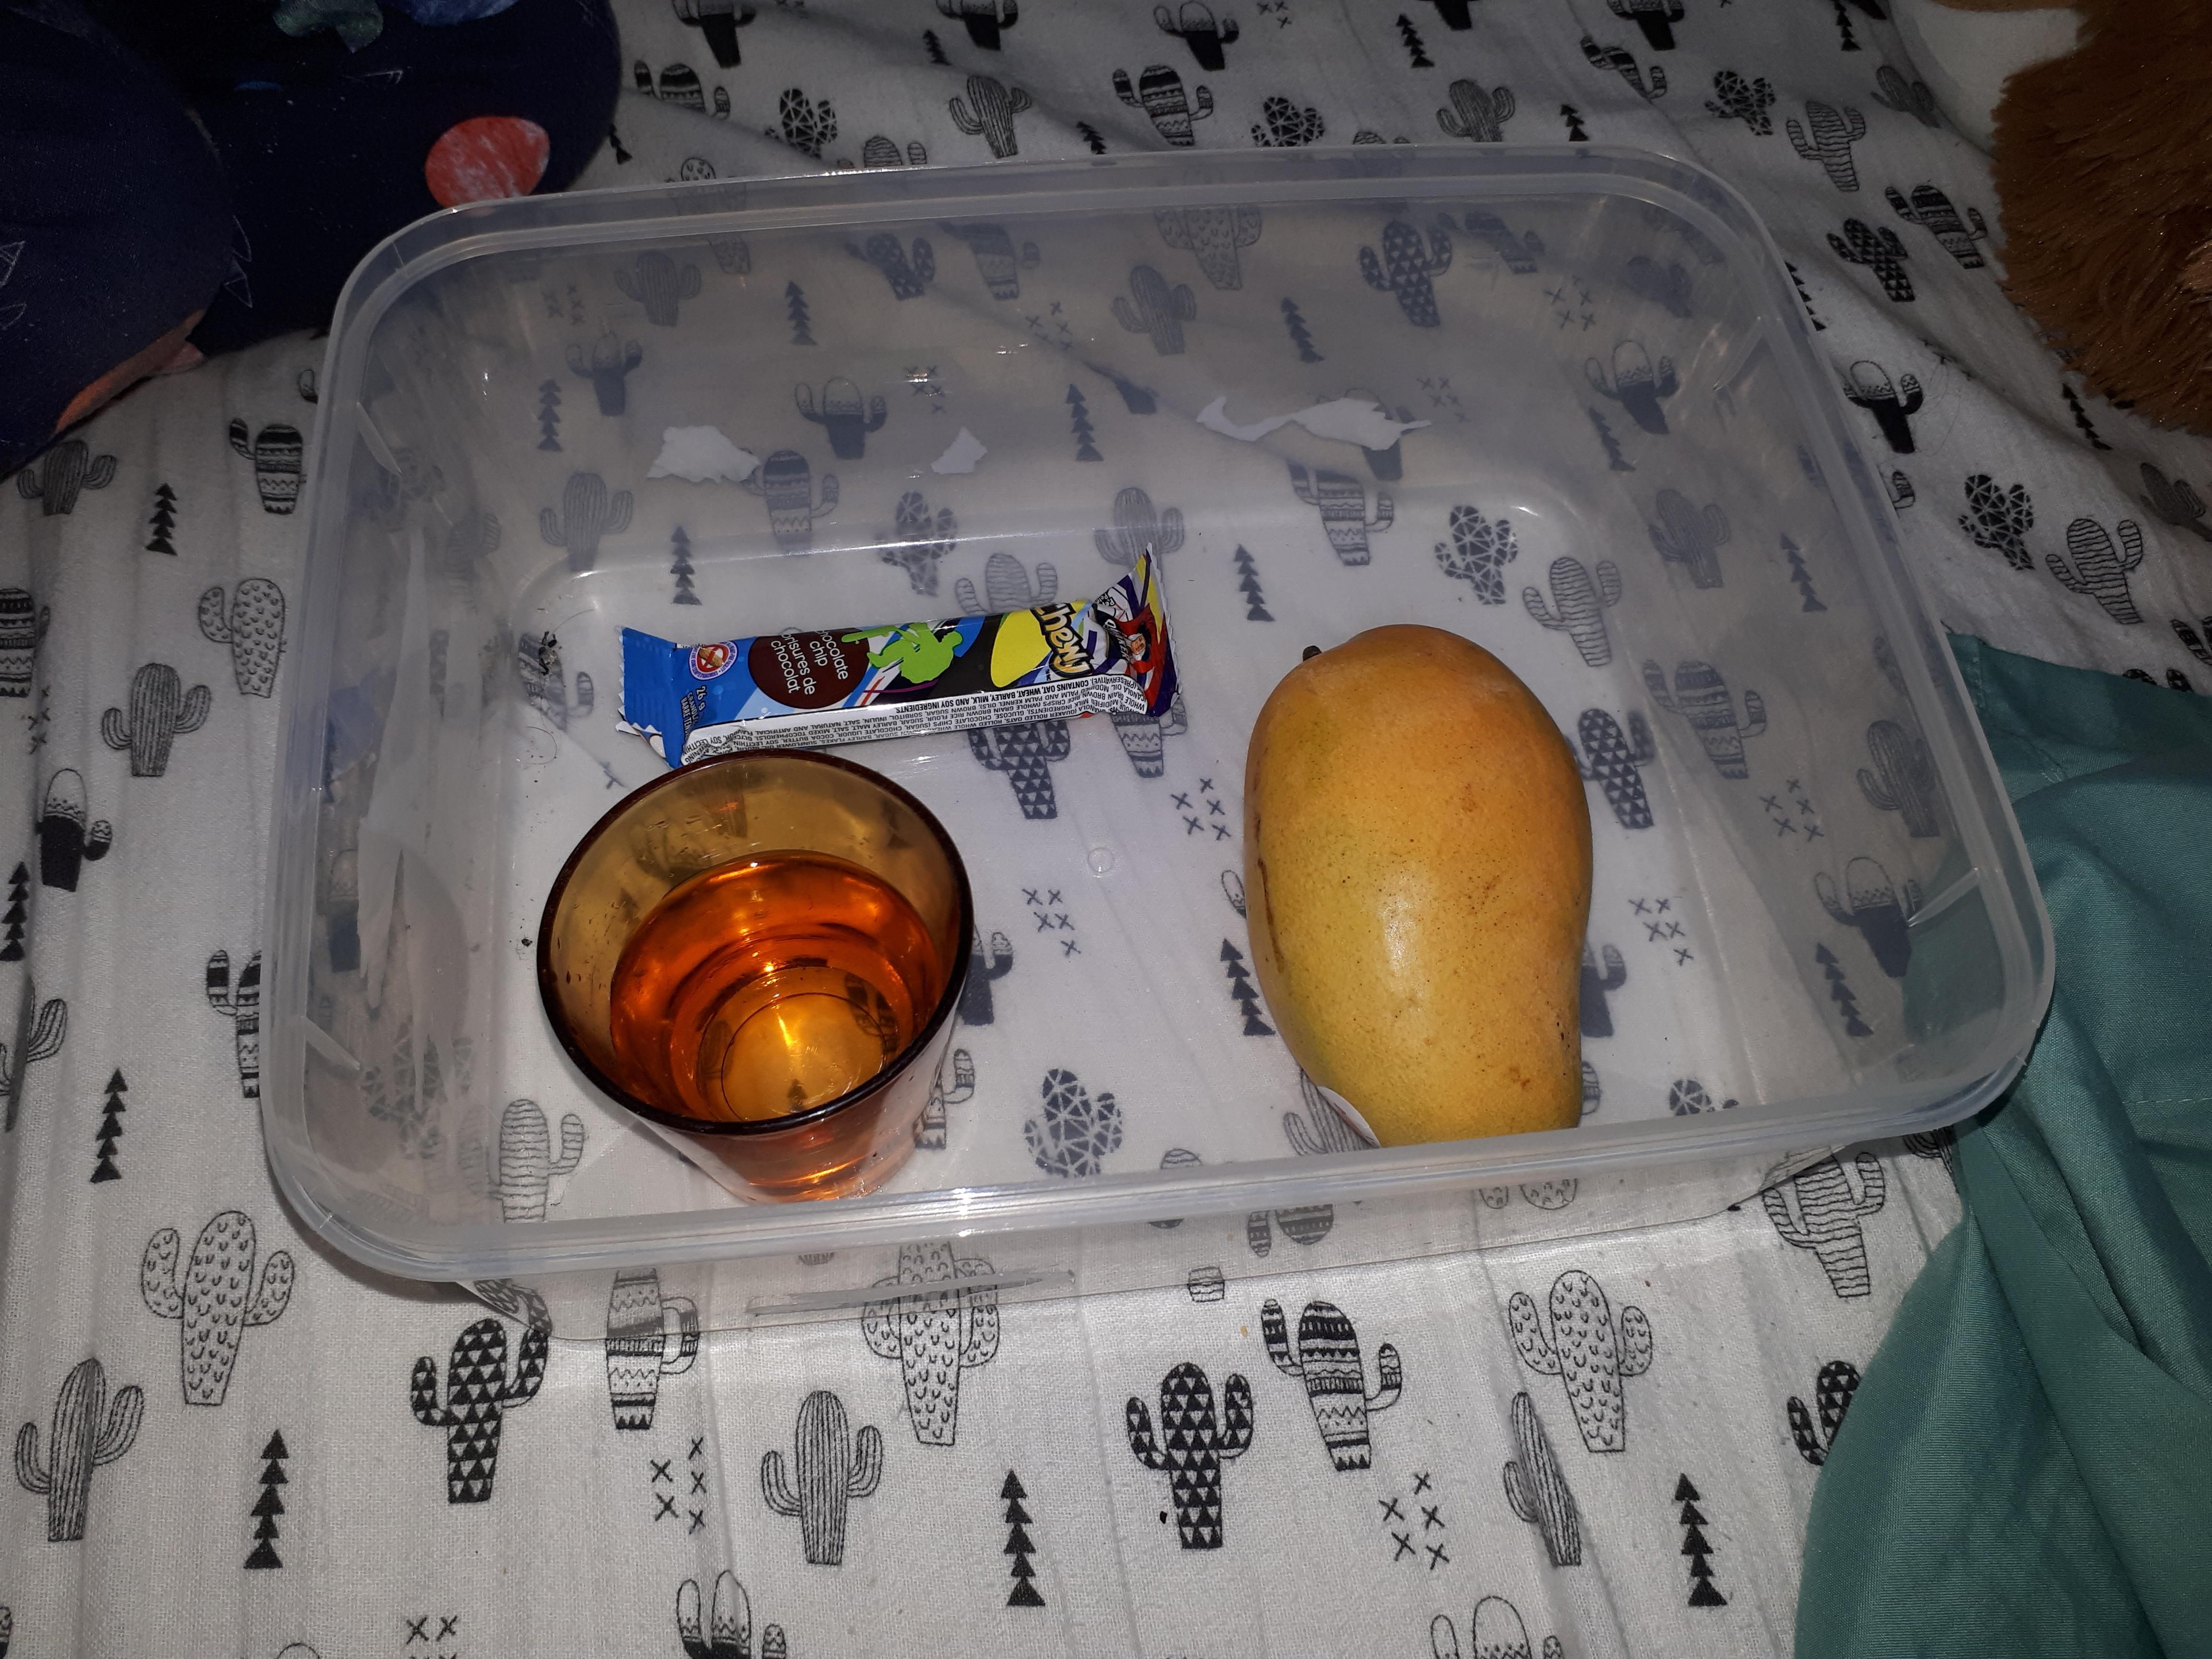 My 4 y/o made me breakfast in bed